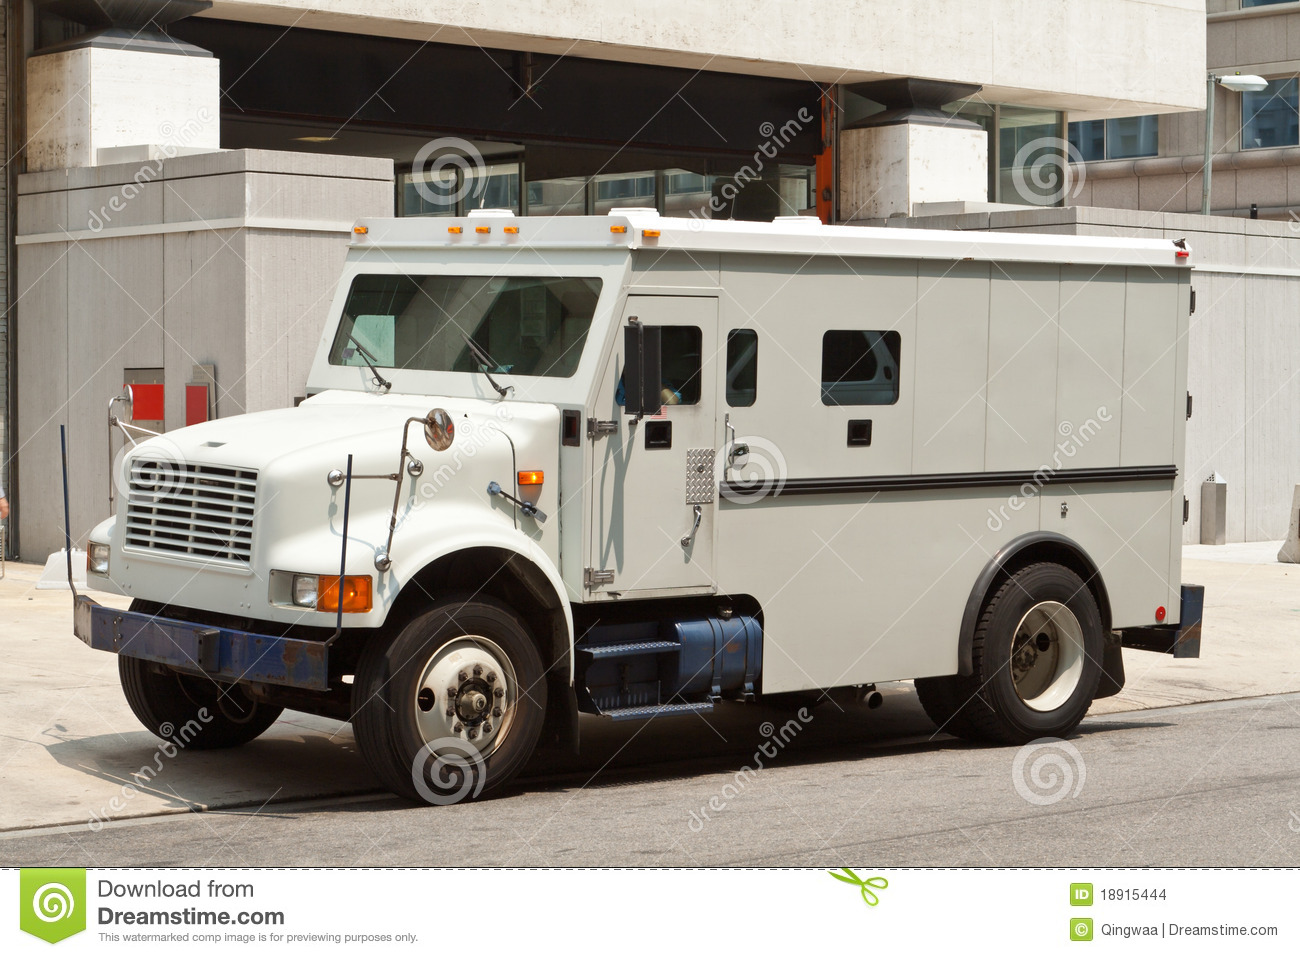 http://thumbs.dreamstime.com/z/armoured-armored-car-parked-street-building-18915444.jpg